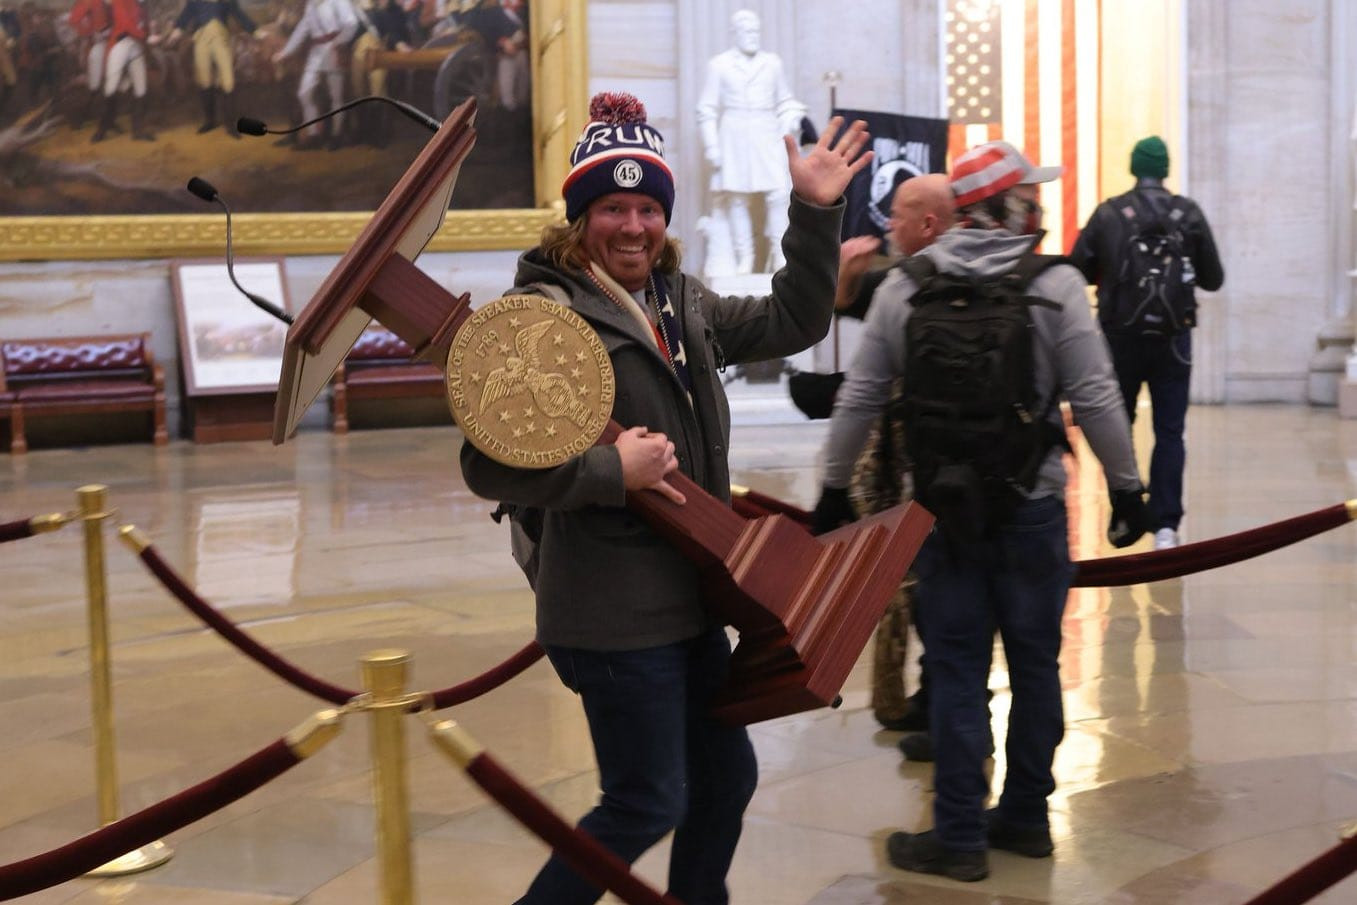 Capitol rioter seen carrying off Nancy Pelosi's lectern in viral image arrested lindakejisblog